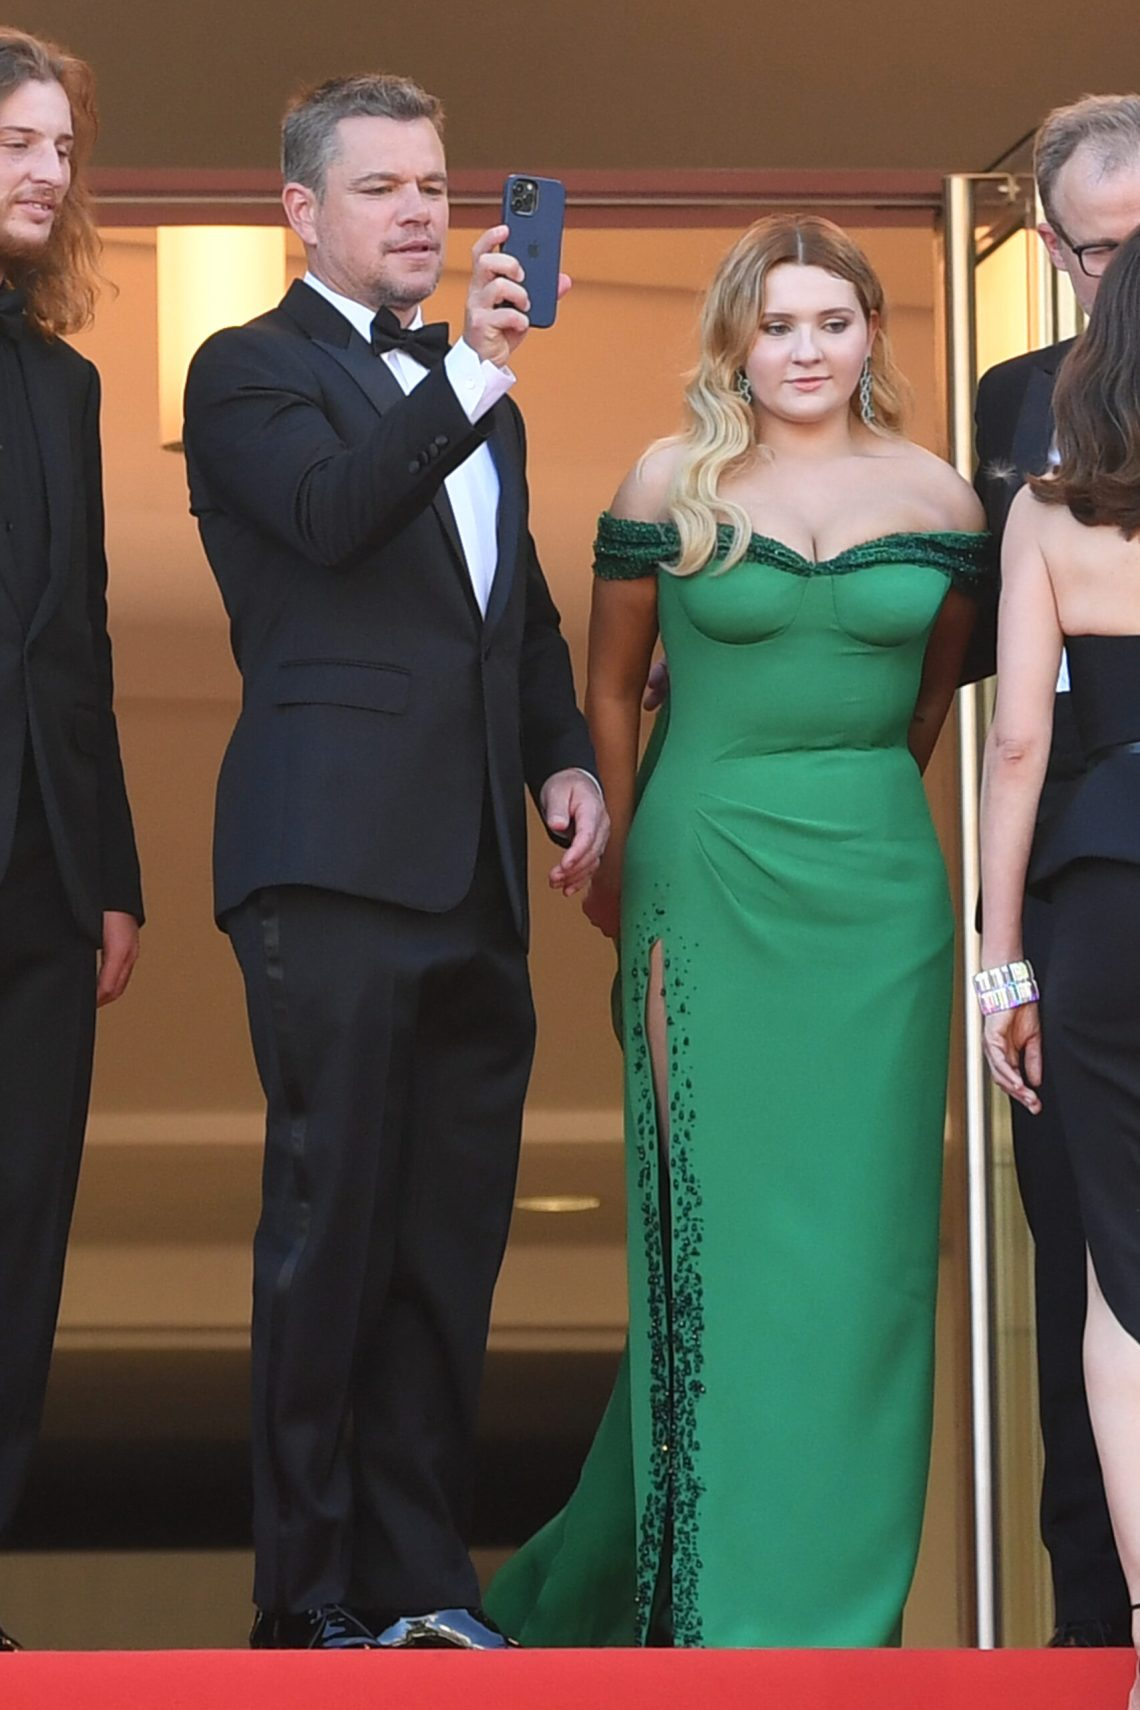 Matt Damon and Abigail Breslin attend the screening of 'Stillwater' during the 74th Cannes Film Festival in Cannes, France. © Rune Hellestad